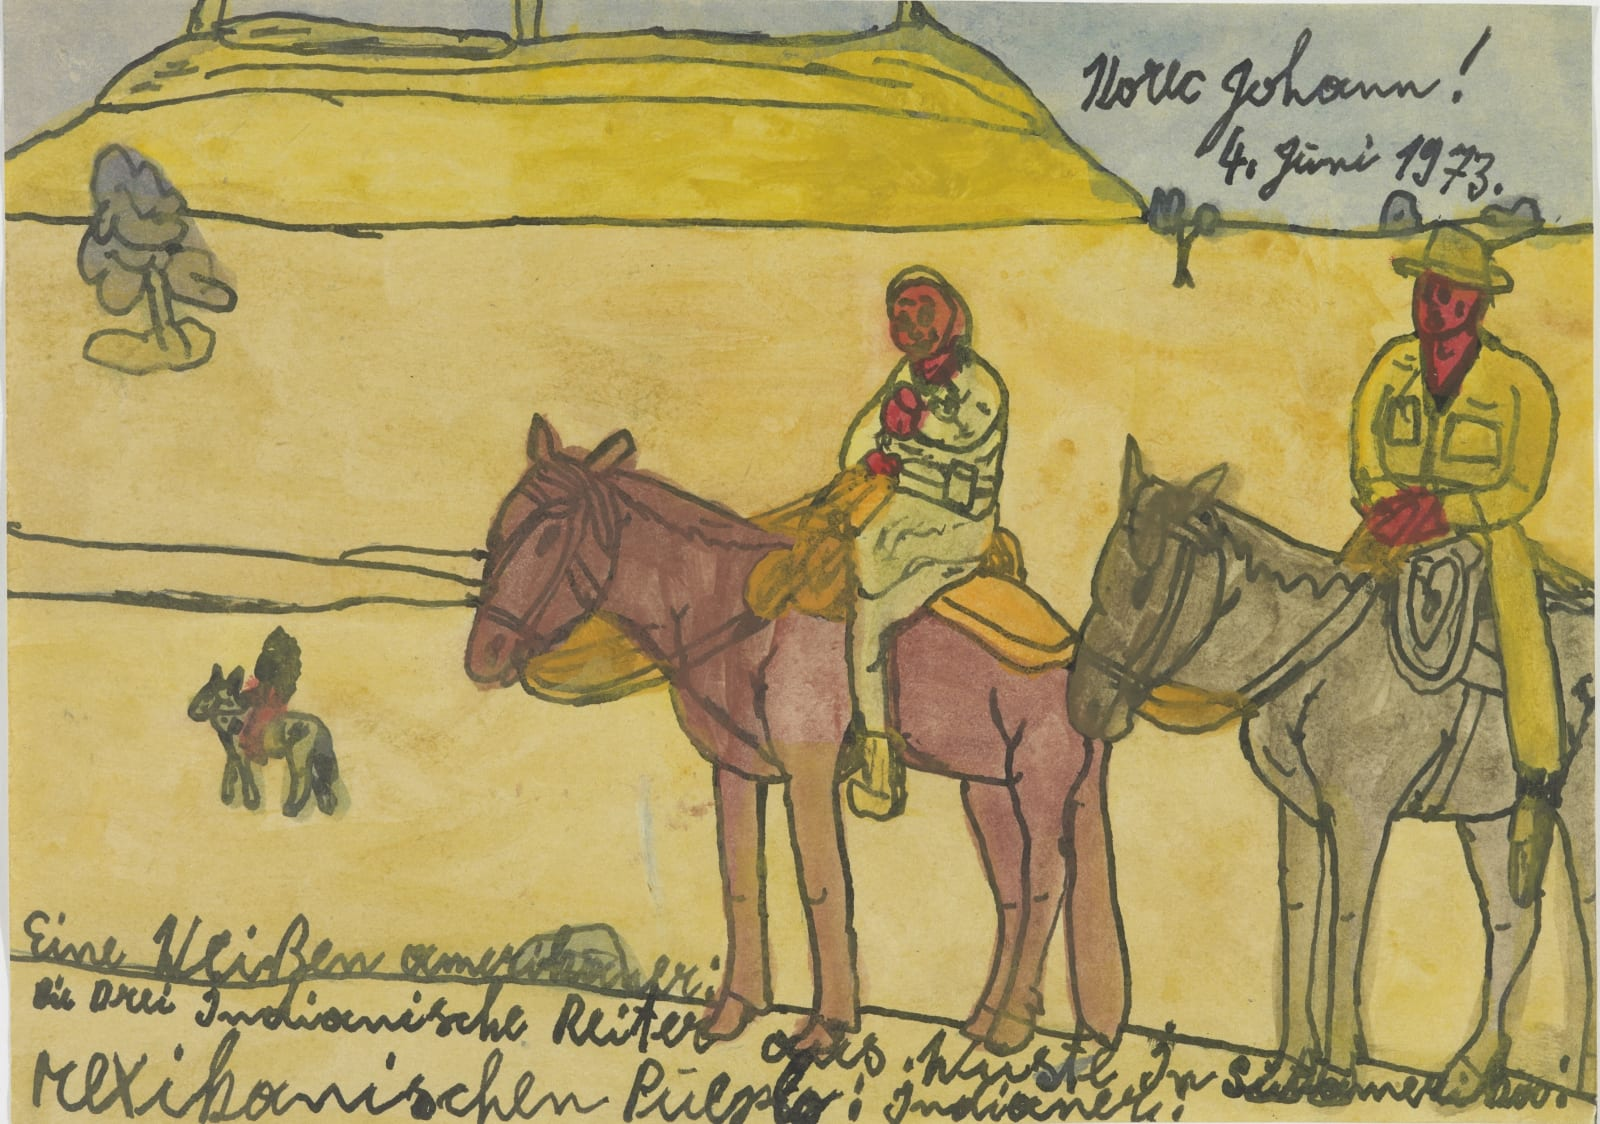 Untitled (Western Scene), 1973 Ink and watercolor on paper 8.3 x 11.8 in. (21.1 x 30 cm.) (JK 17) $6,000